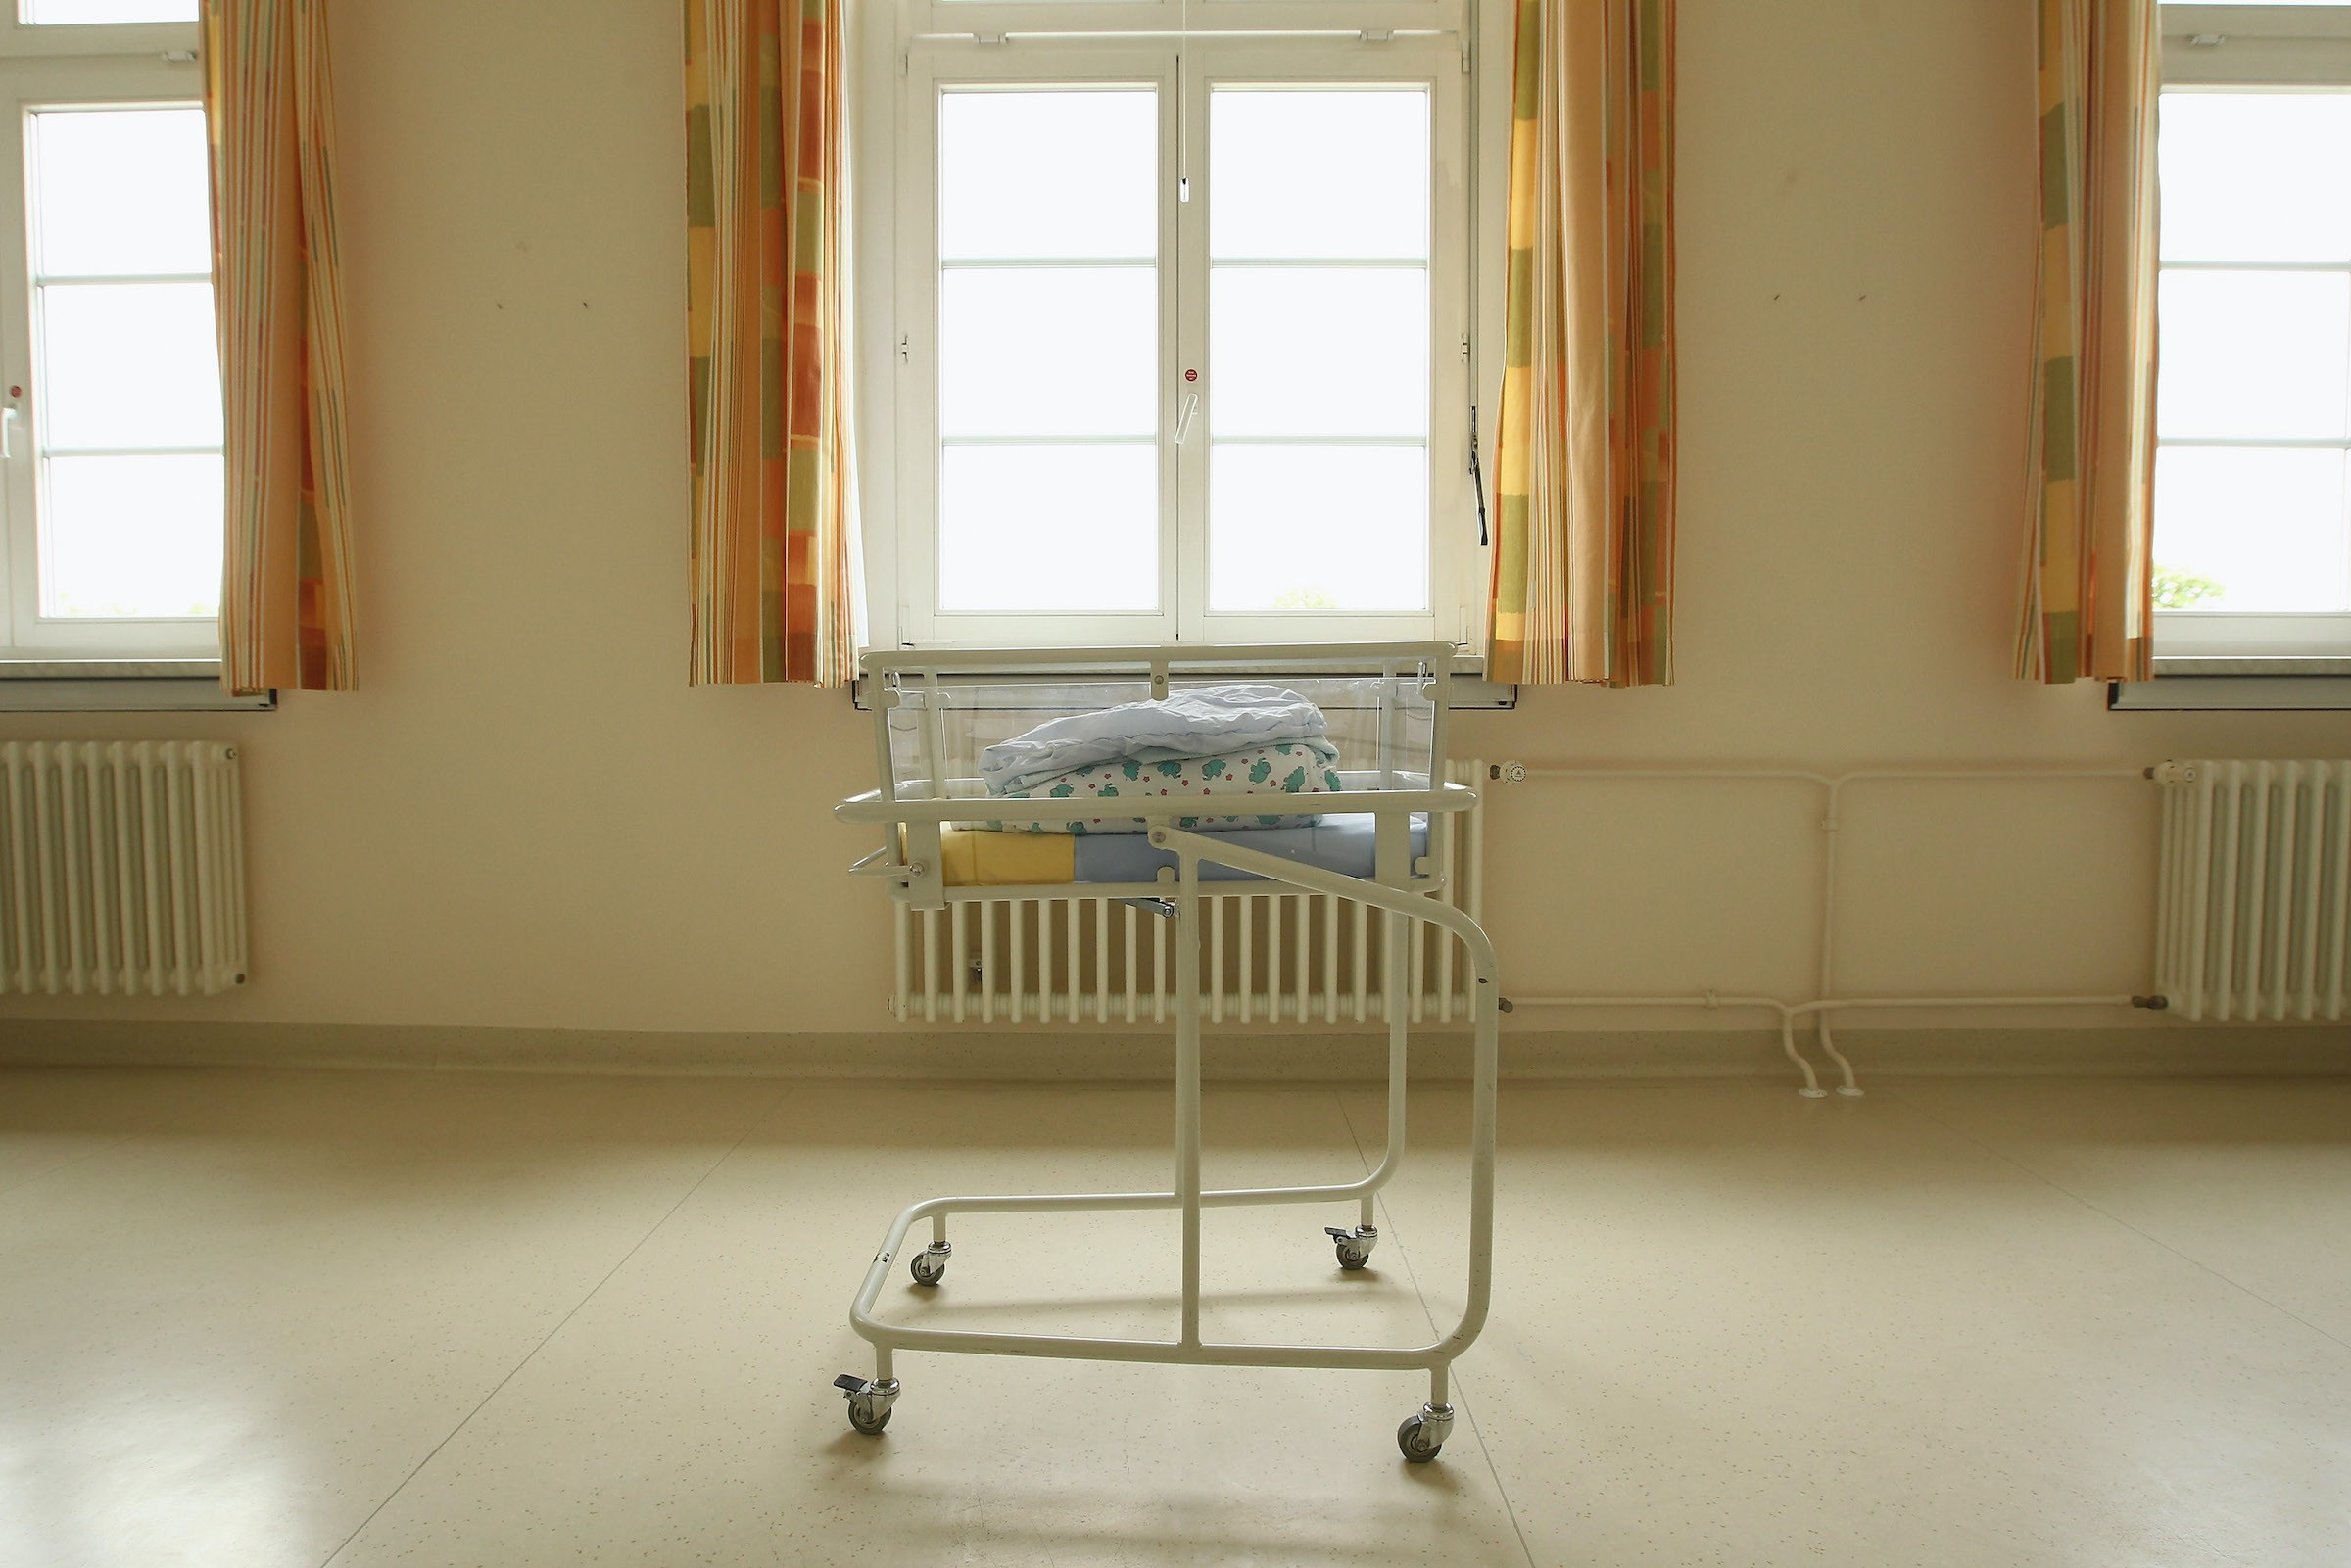 An empty baby bed in front of a window in a maternity ward.